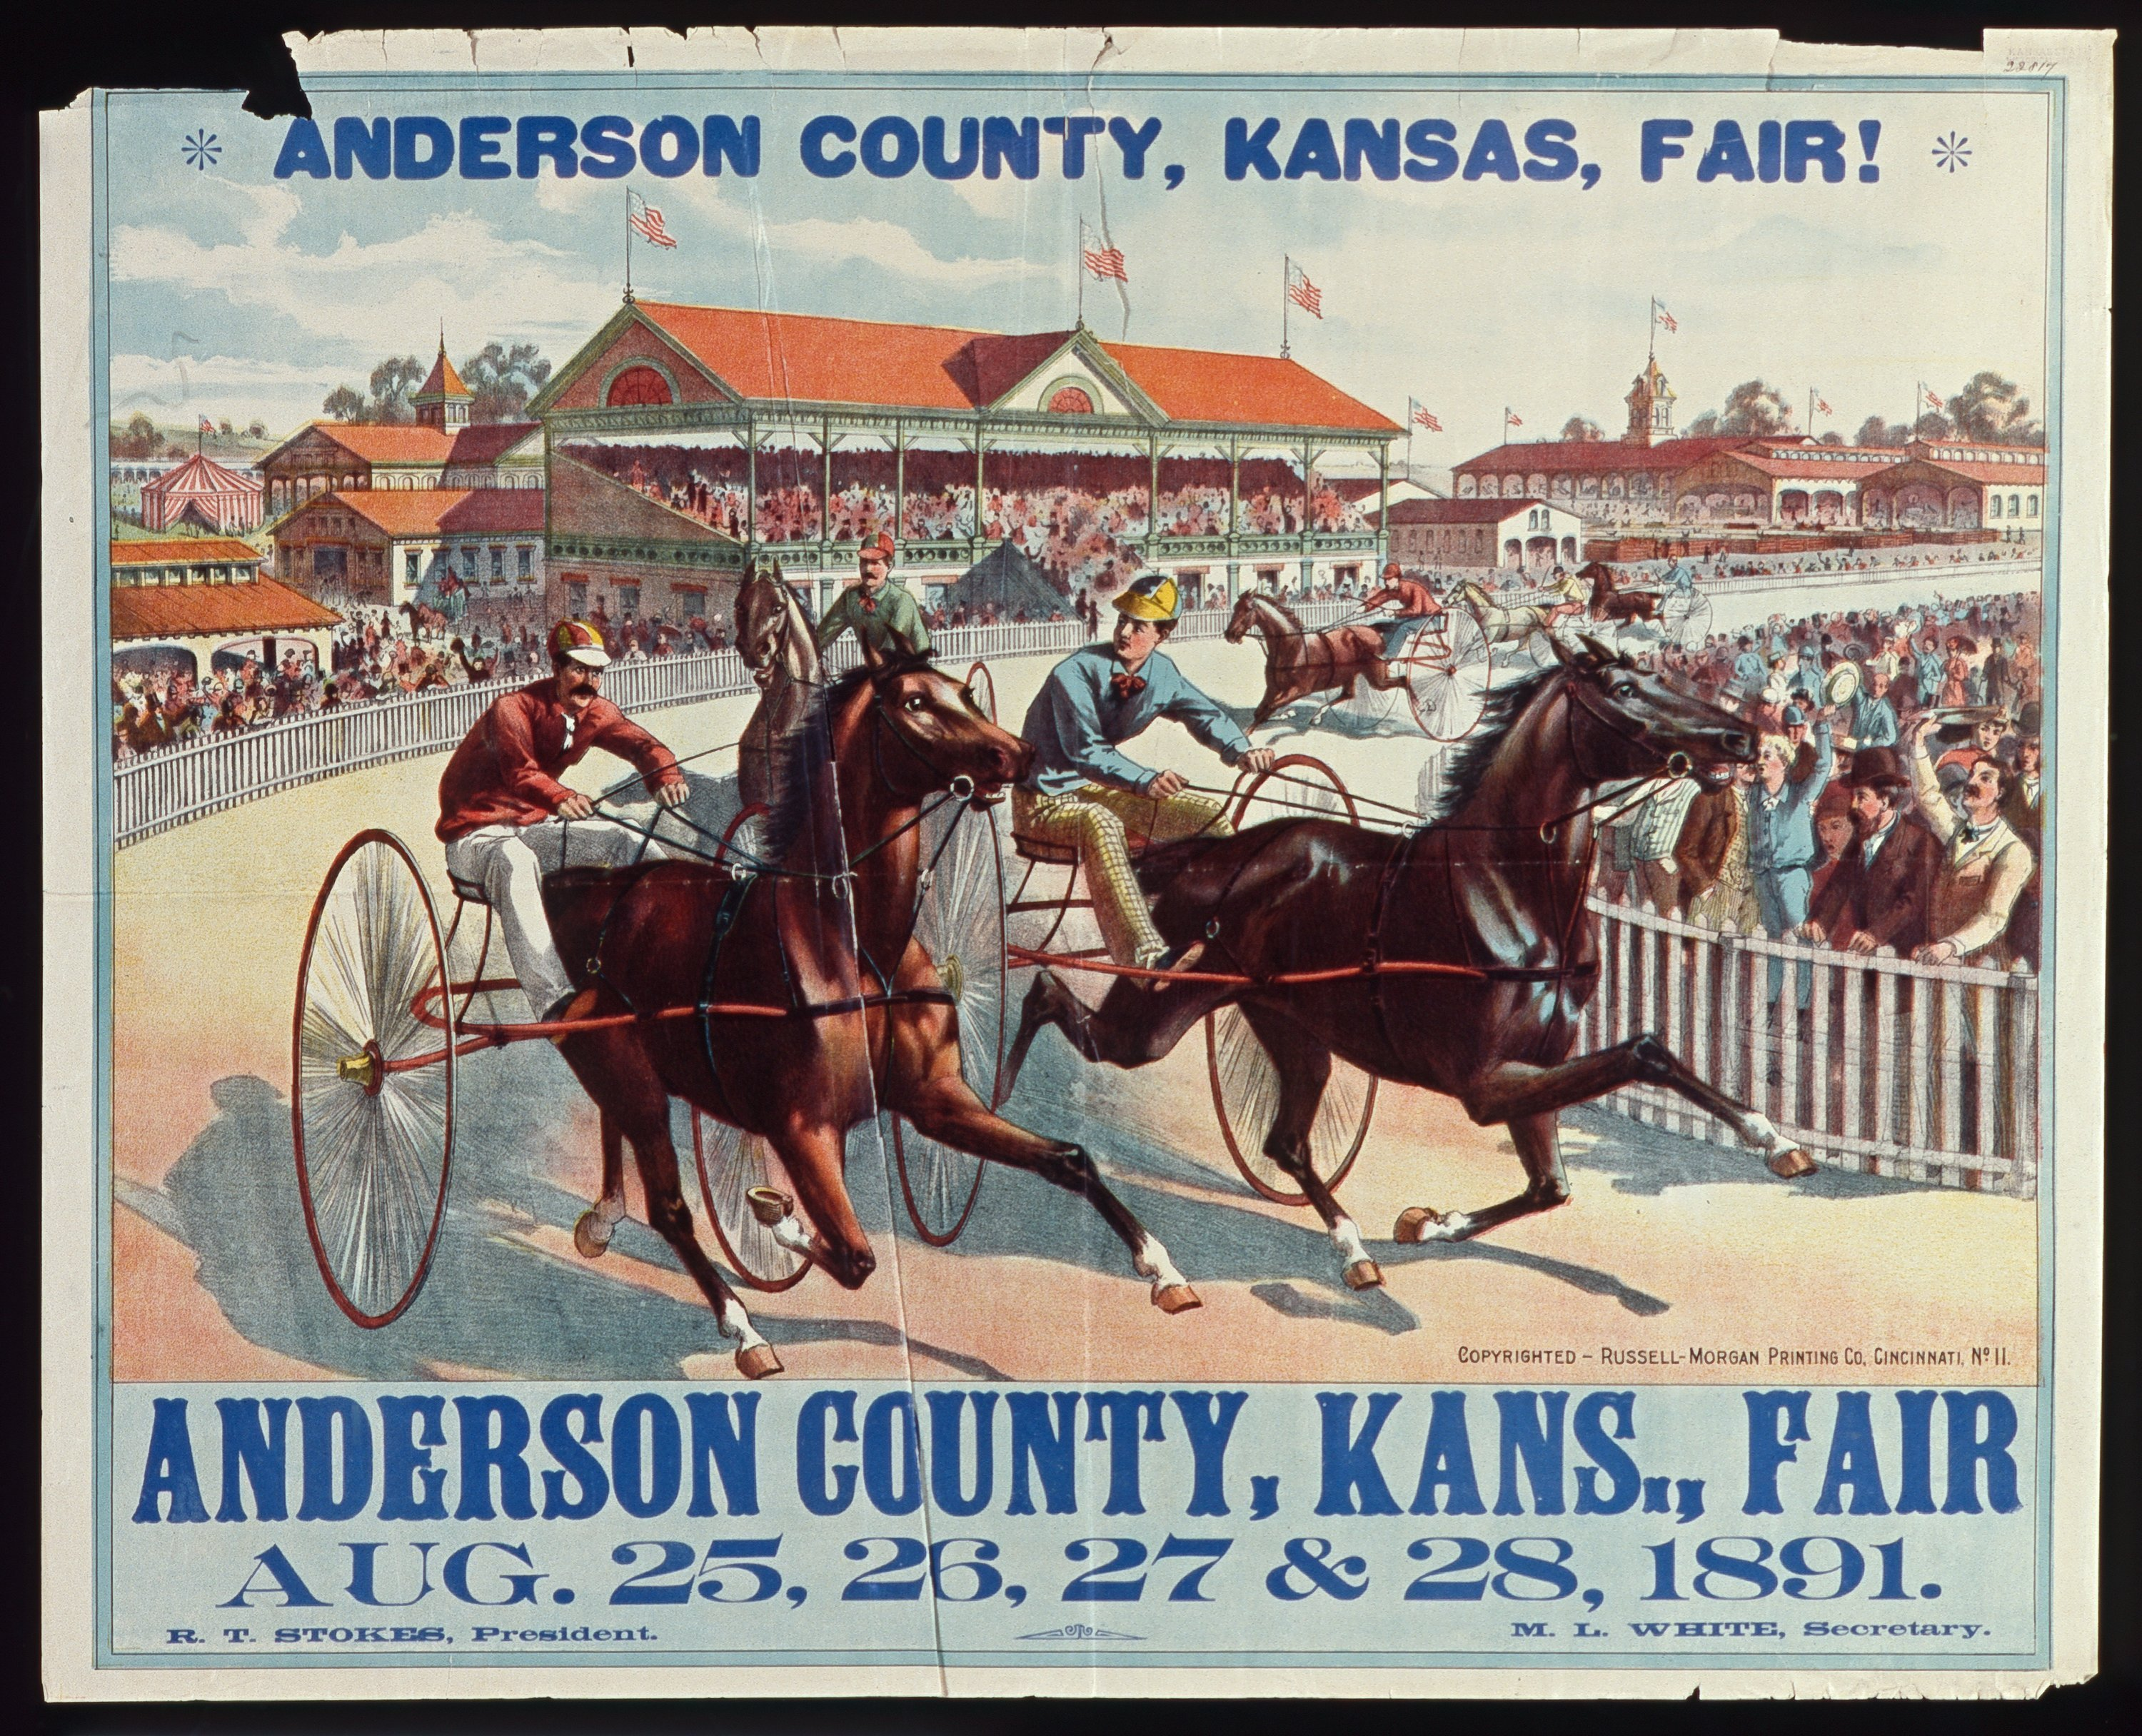 Anderson County, Kansas, fair